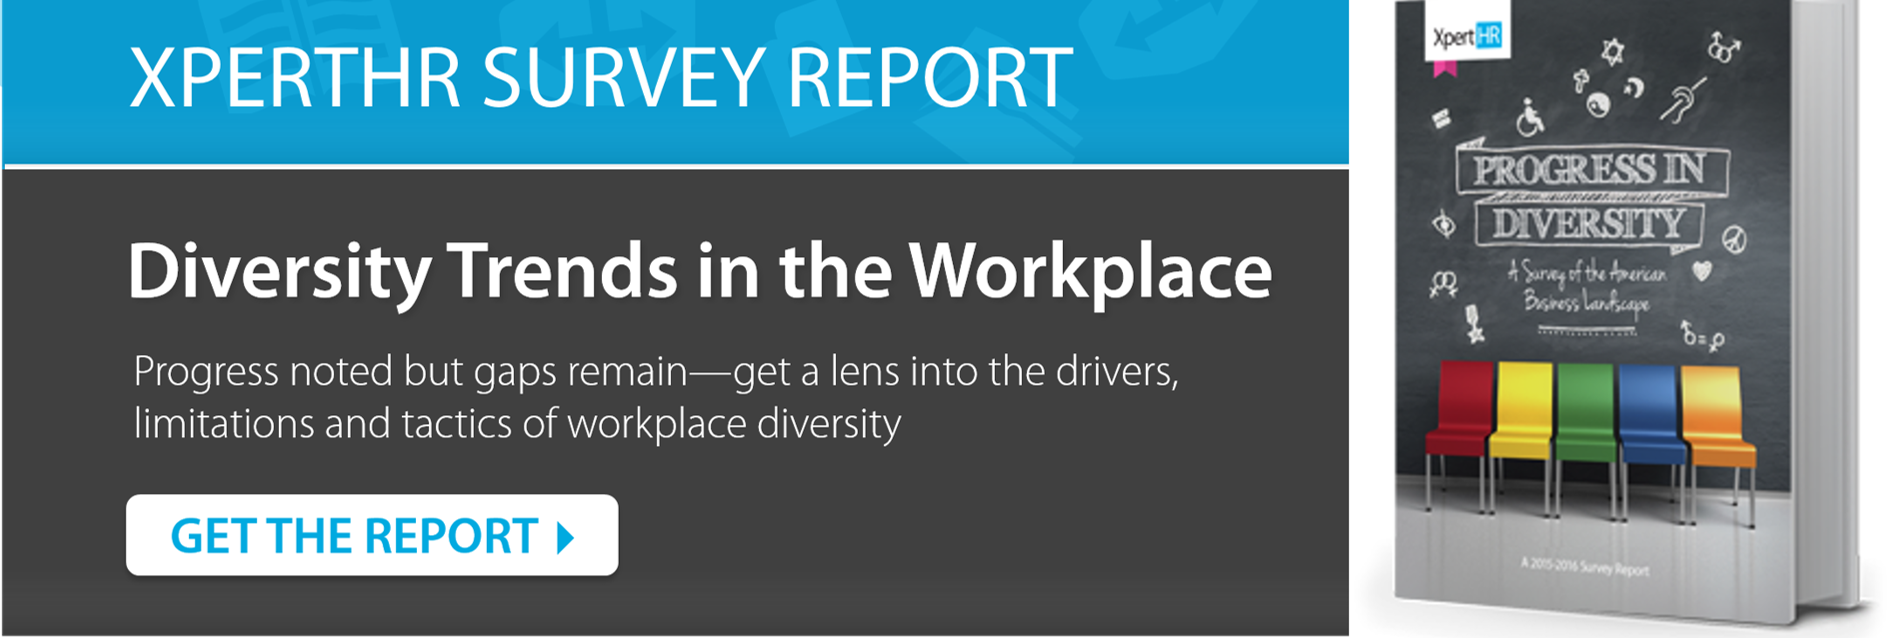 Diversity Survey Report 2015-16 bigger